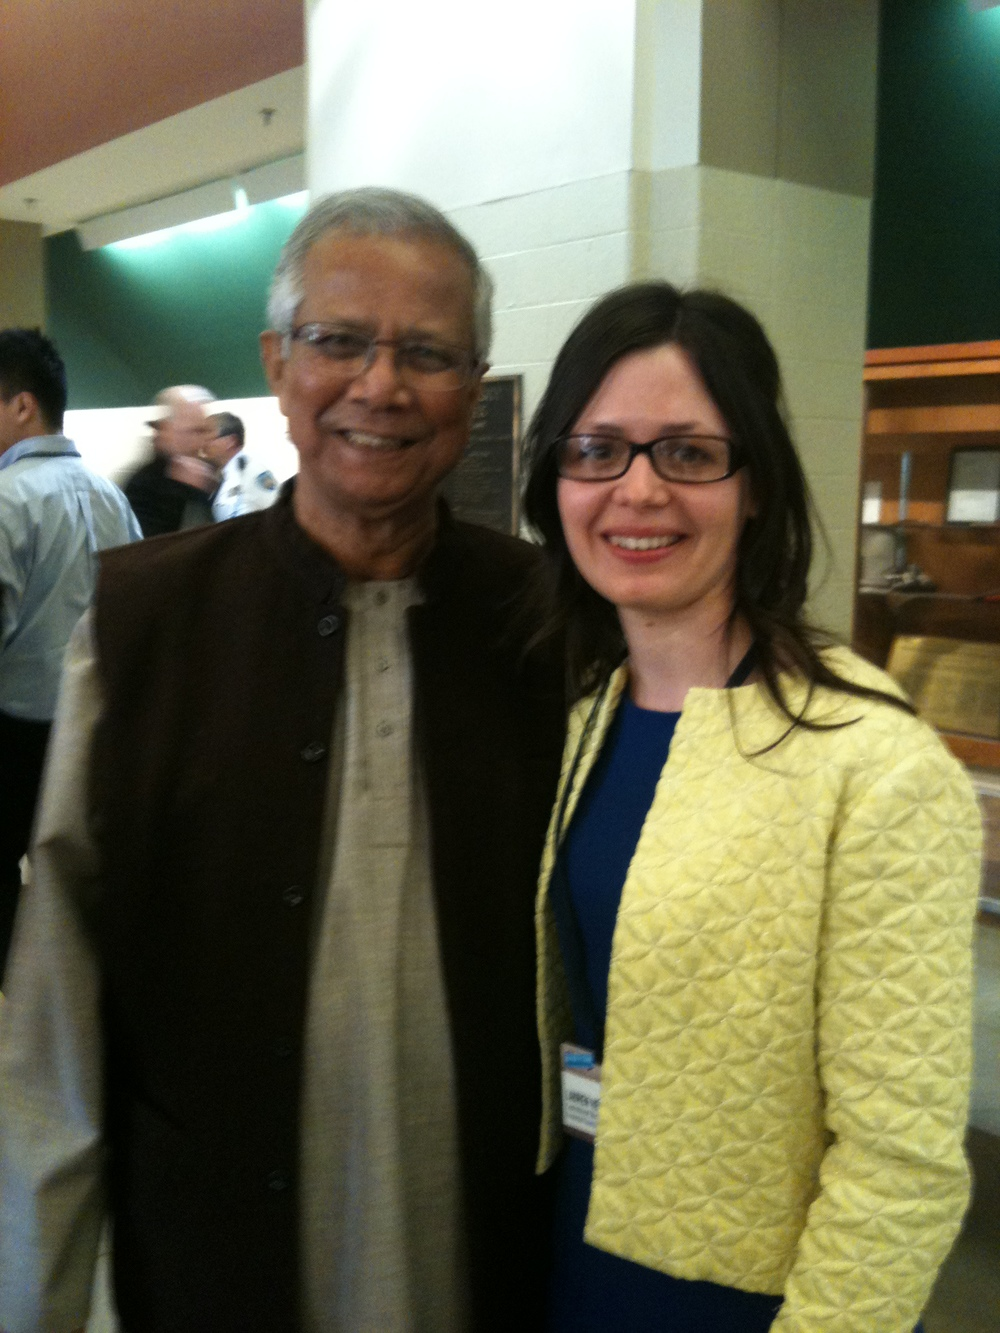 Lauren Herman and Mohammad Yunus.  Yunus is the founding pioneer of microcredit.